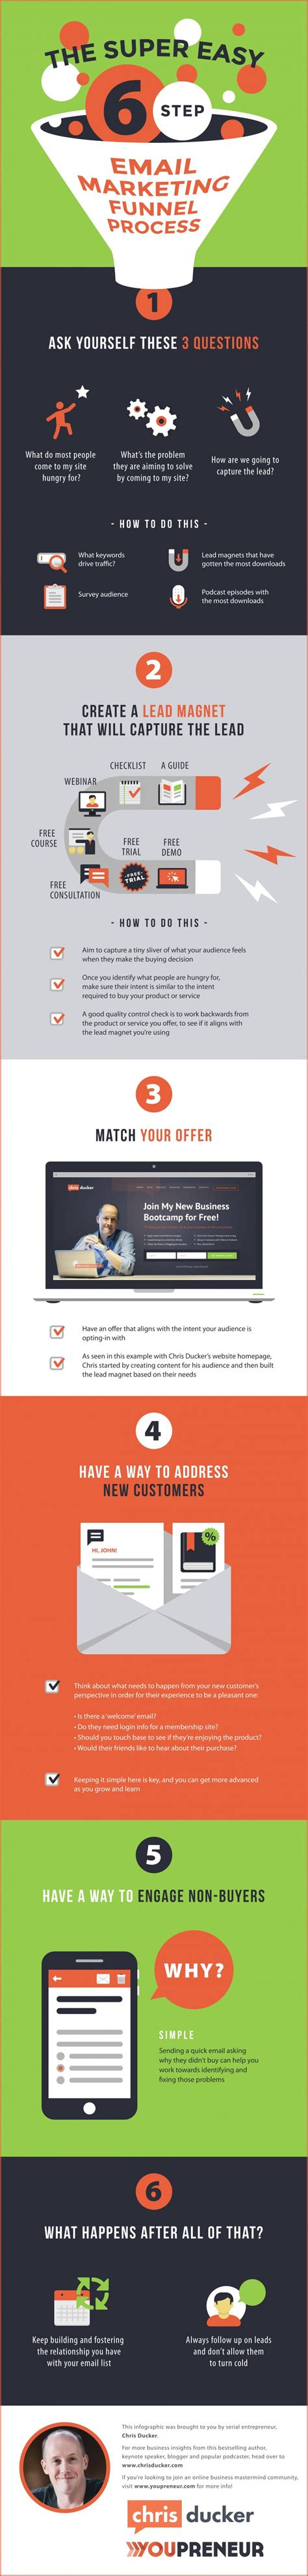 The Ultimate Email Marketing Funnel Template Brandongaille Com Email Funnel Templates